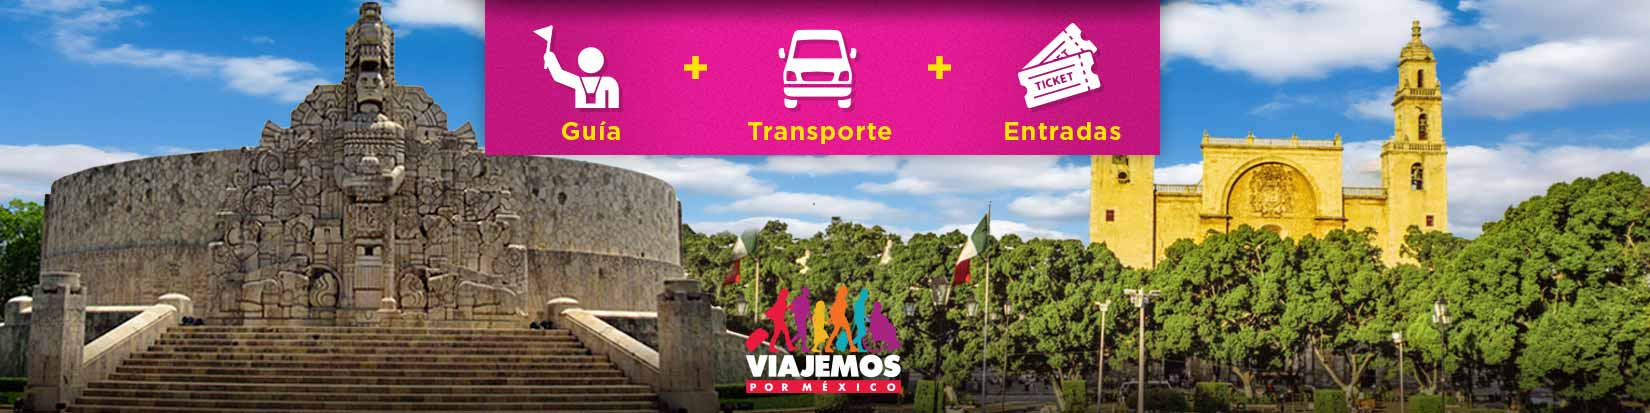 Tours / Excursiones en Mérida de hasta 10 hrs